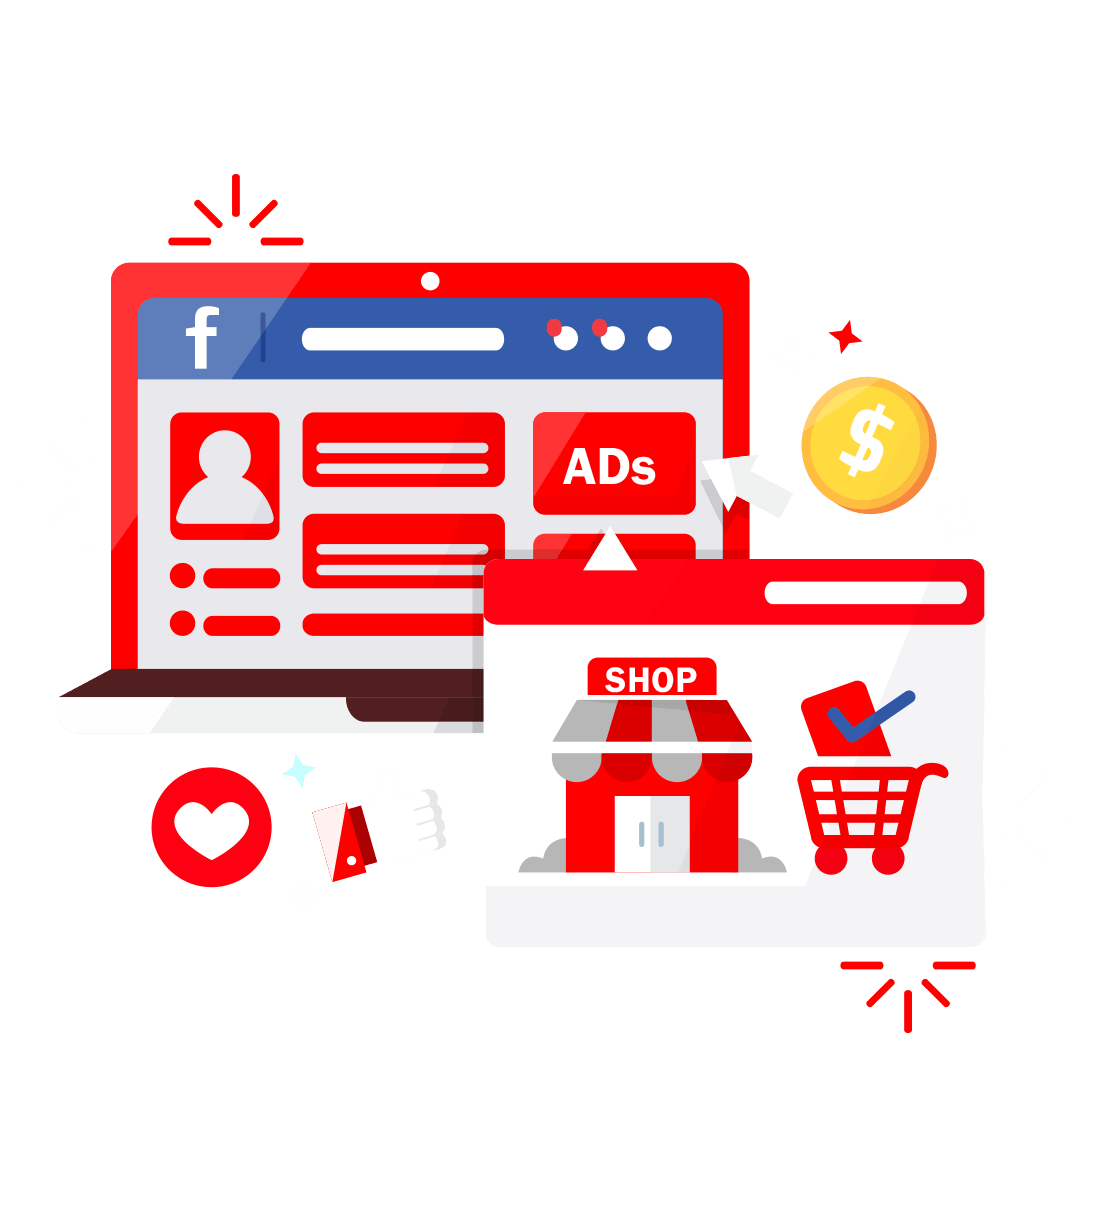 facebook ads manager, facebook ads login, facebook ads cost, facebook ad library, google ads, facebook ads manager app, facebook advertising industry, new facebook ad formats, https://iventurebd.com